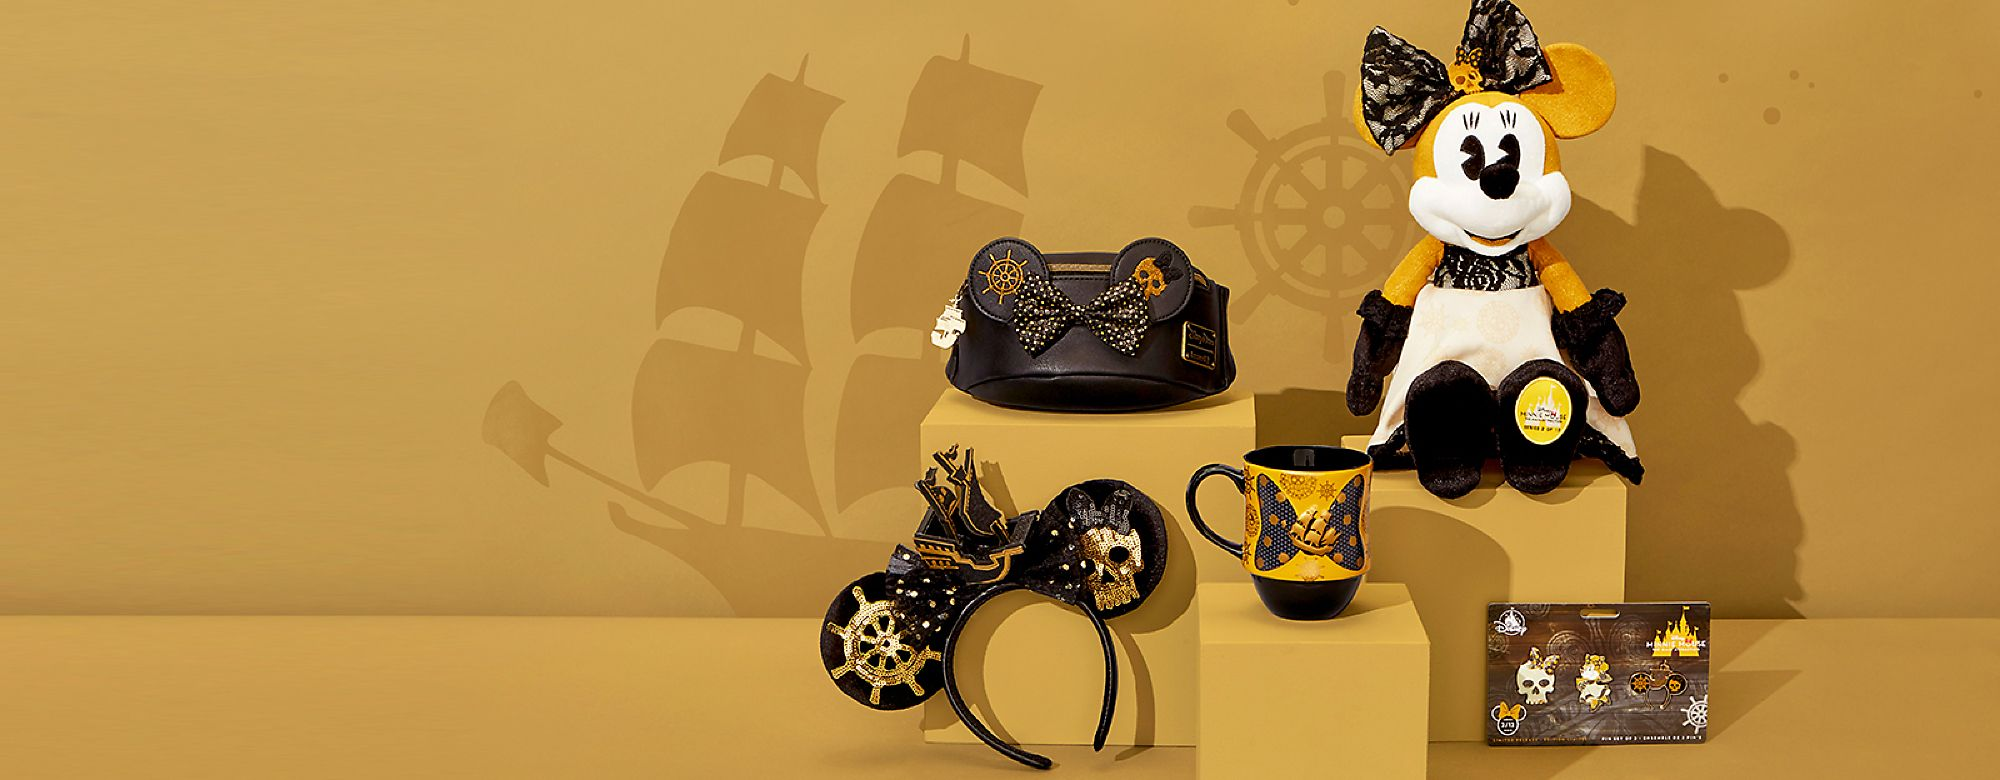 Pirates of the Carribean | Series 2 Prepare to set sail with our swashbuckling collection